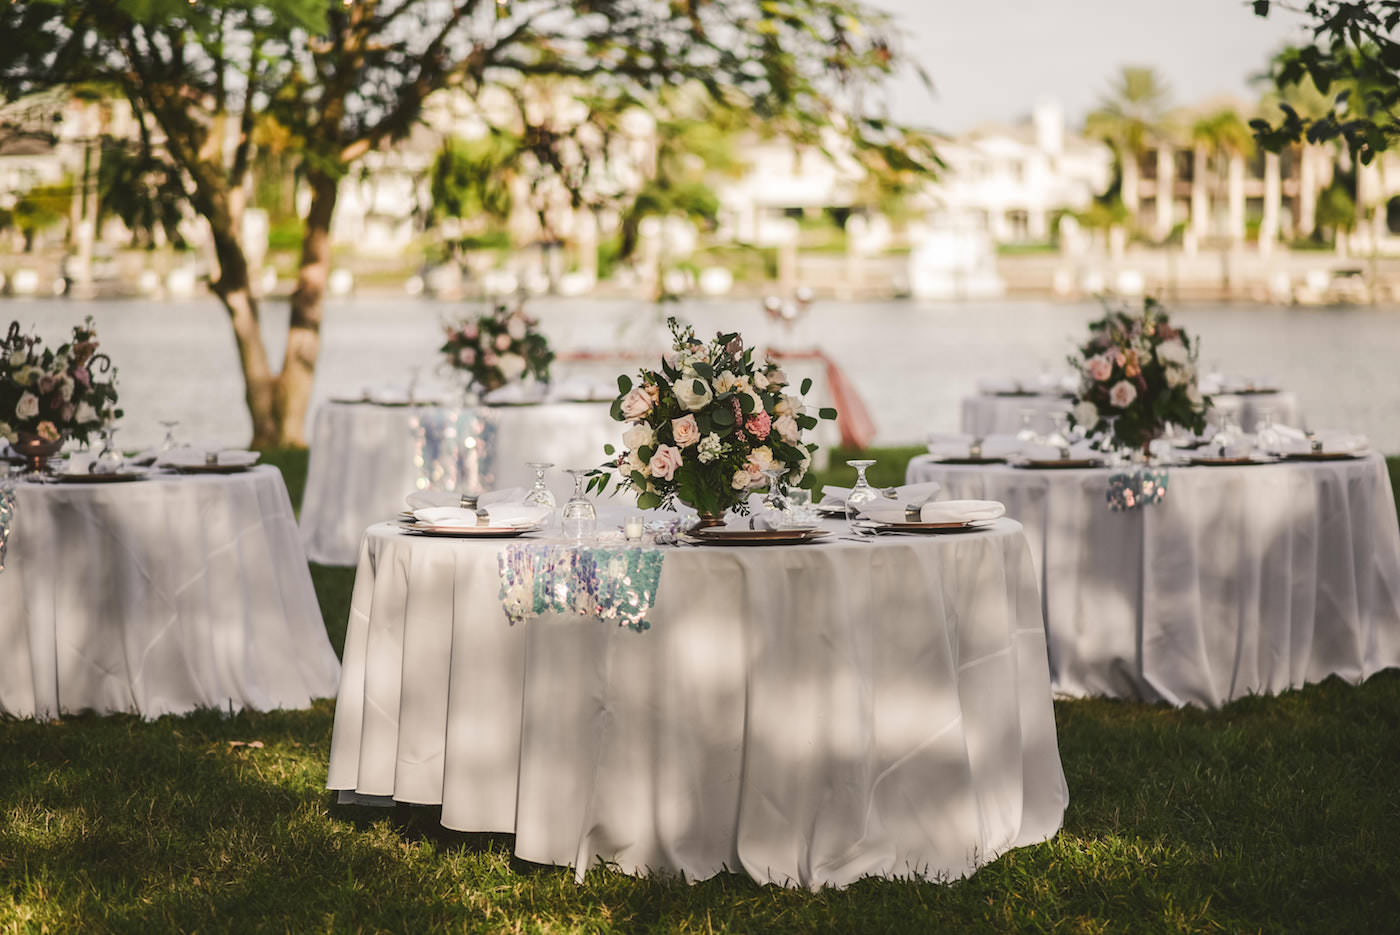 Tampa Outdoor Waterfront Garden Wedding Reception Guest Tables with Sequin Runners and Blush Pink and White Rose Centerpieces with Eucalyptus Greenery | Elite Events Catering